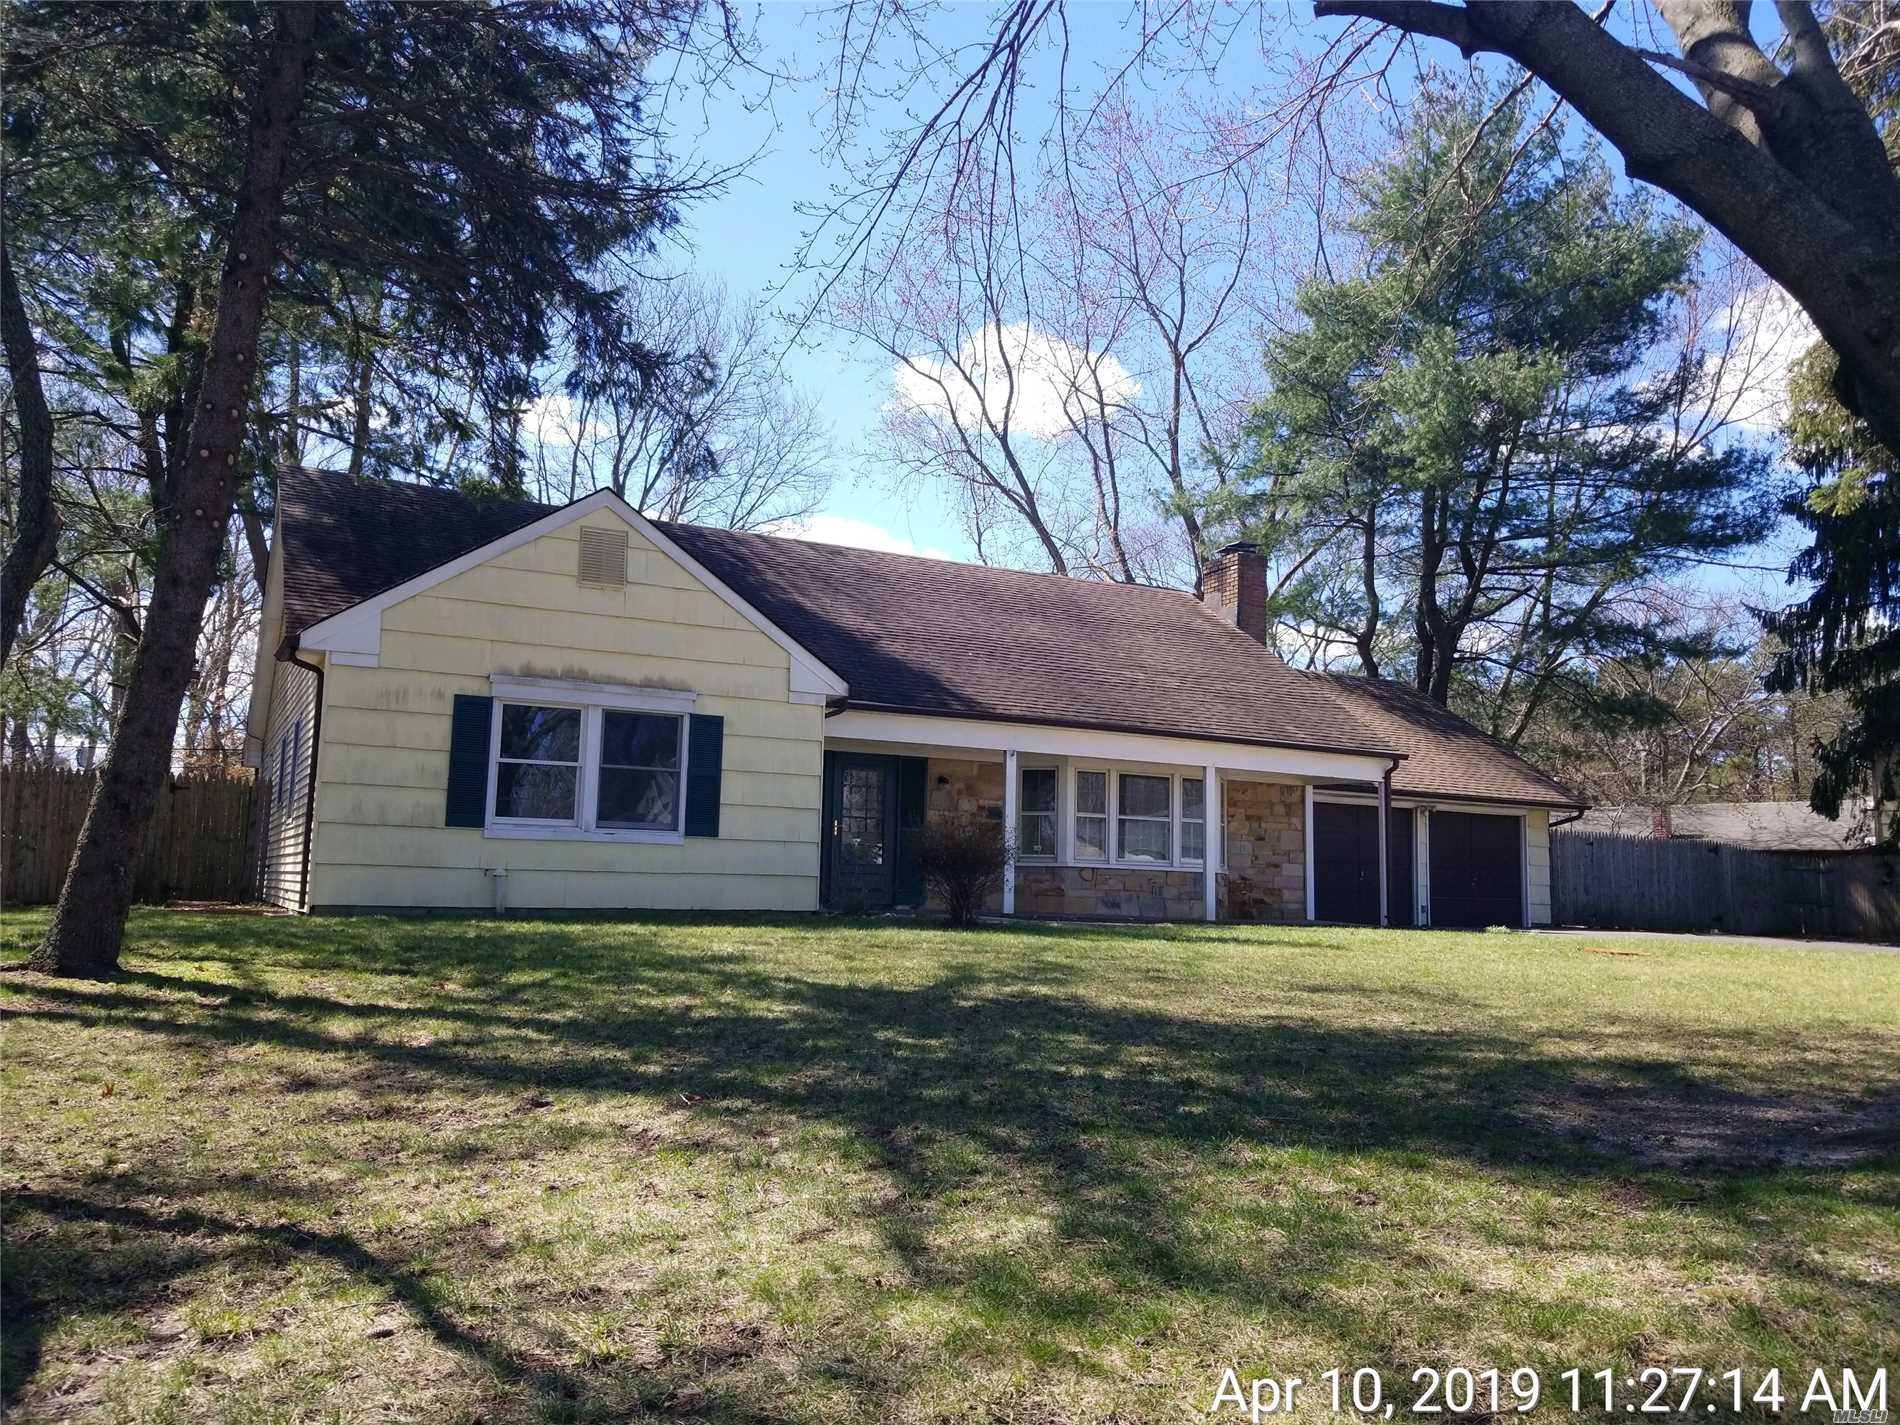 Huge Farm ranch style home with 5 bedrooms 3 full bathroom and a 2 car garage. This house has some updates NEW FLOORING AND CARPETS,  boiler/ oil tank, 2 updated bathrooms. 1st floor master bedroom with en-suite bath! Bedrooms are all HUGE!Fenced private backyard to enjoy. Priced to sell tons of potential, excellent for large family over 2800 sqft!